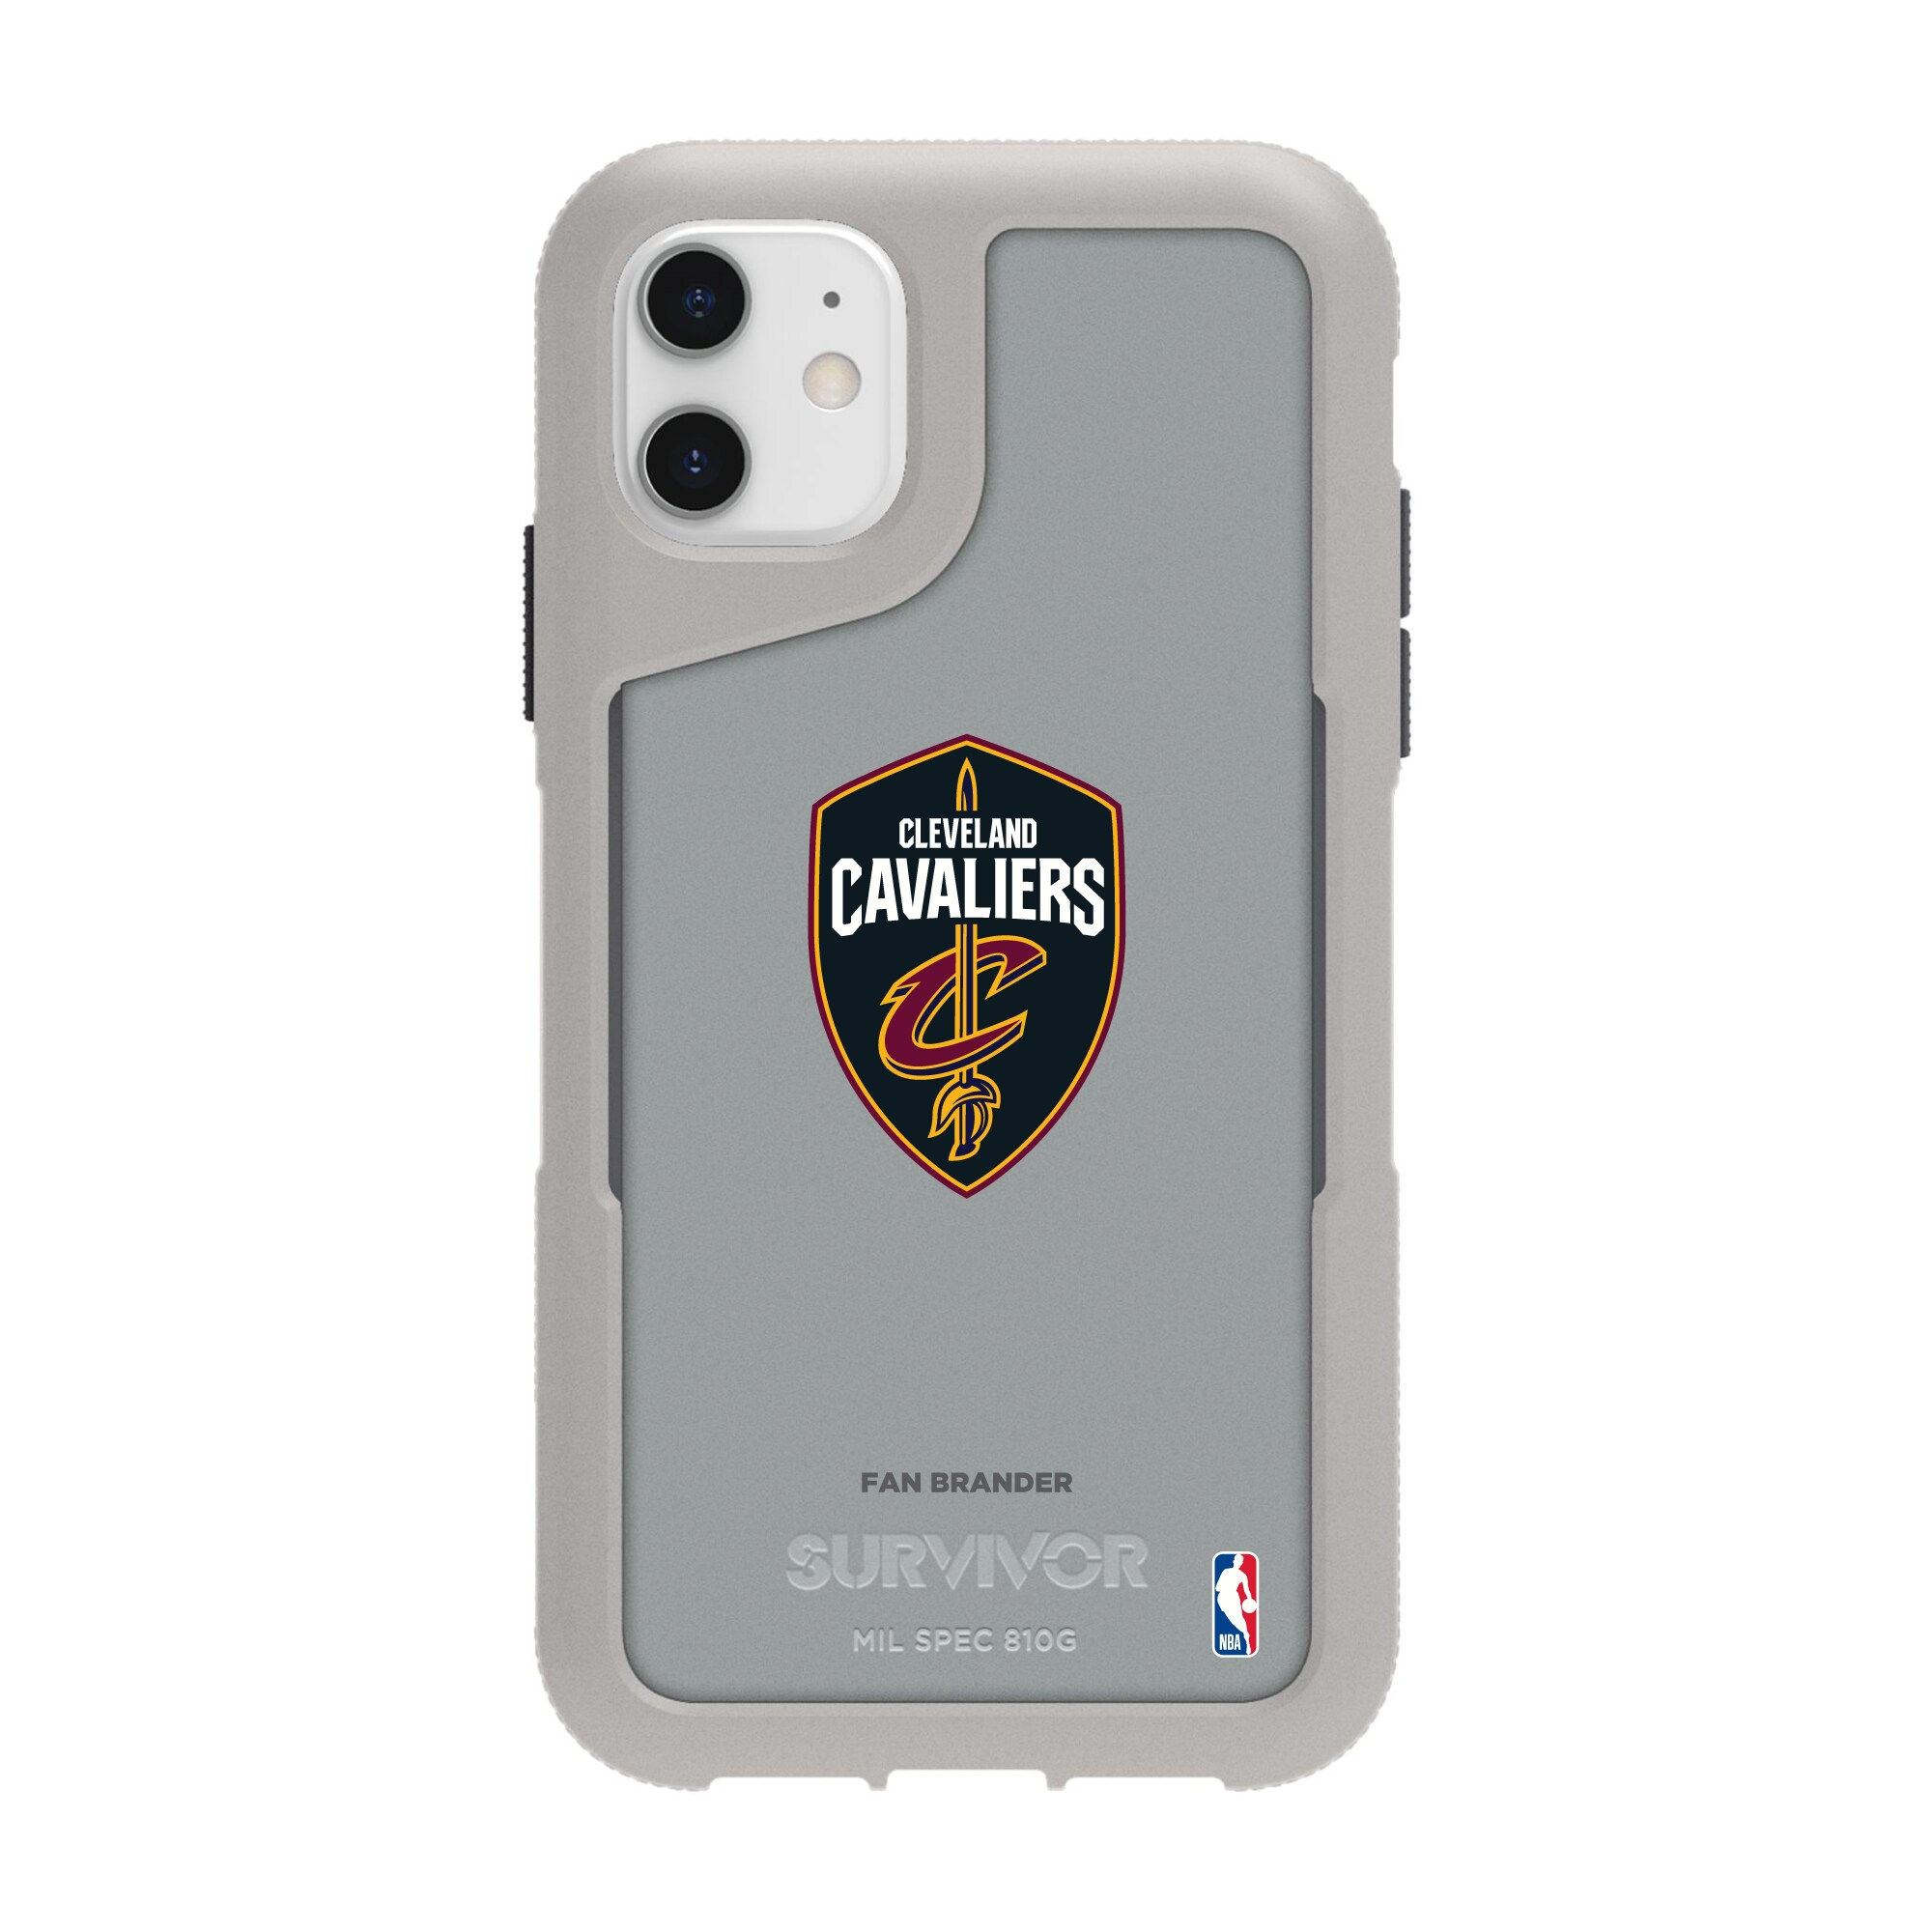 Cleveland Cavaliers Griffin Survivor Endurance iPhone Case - Gray